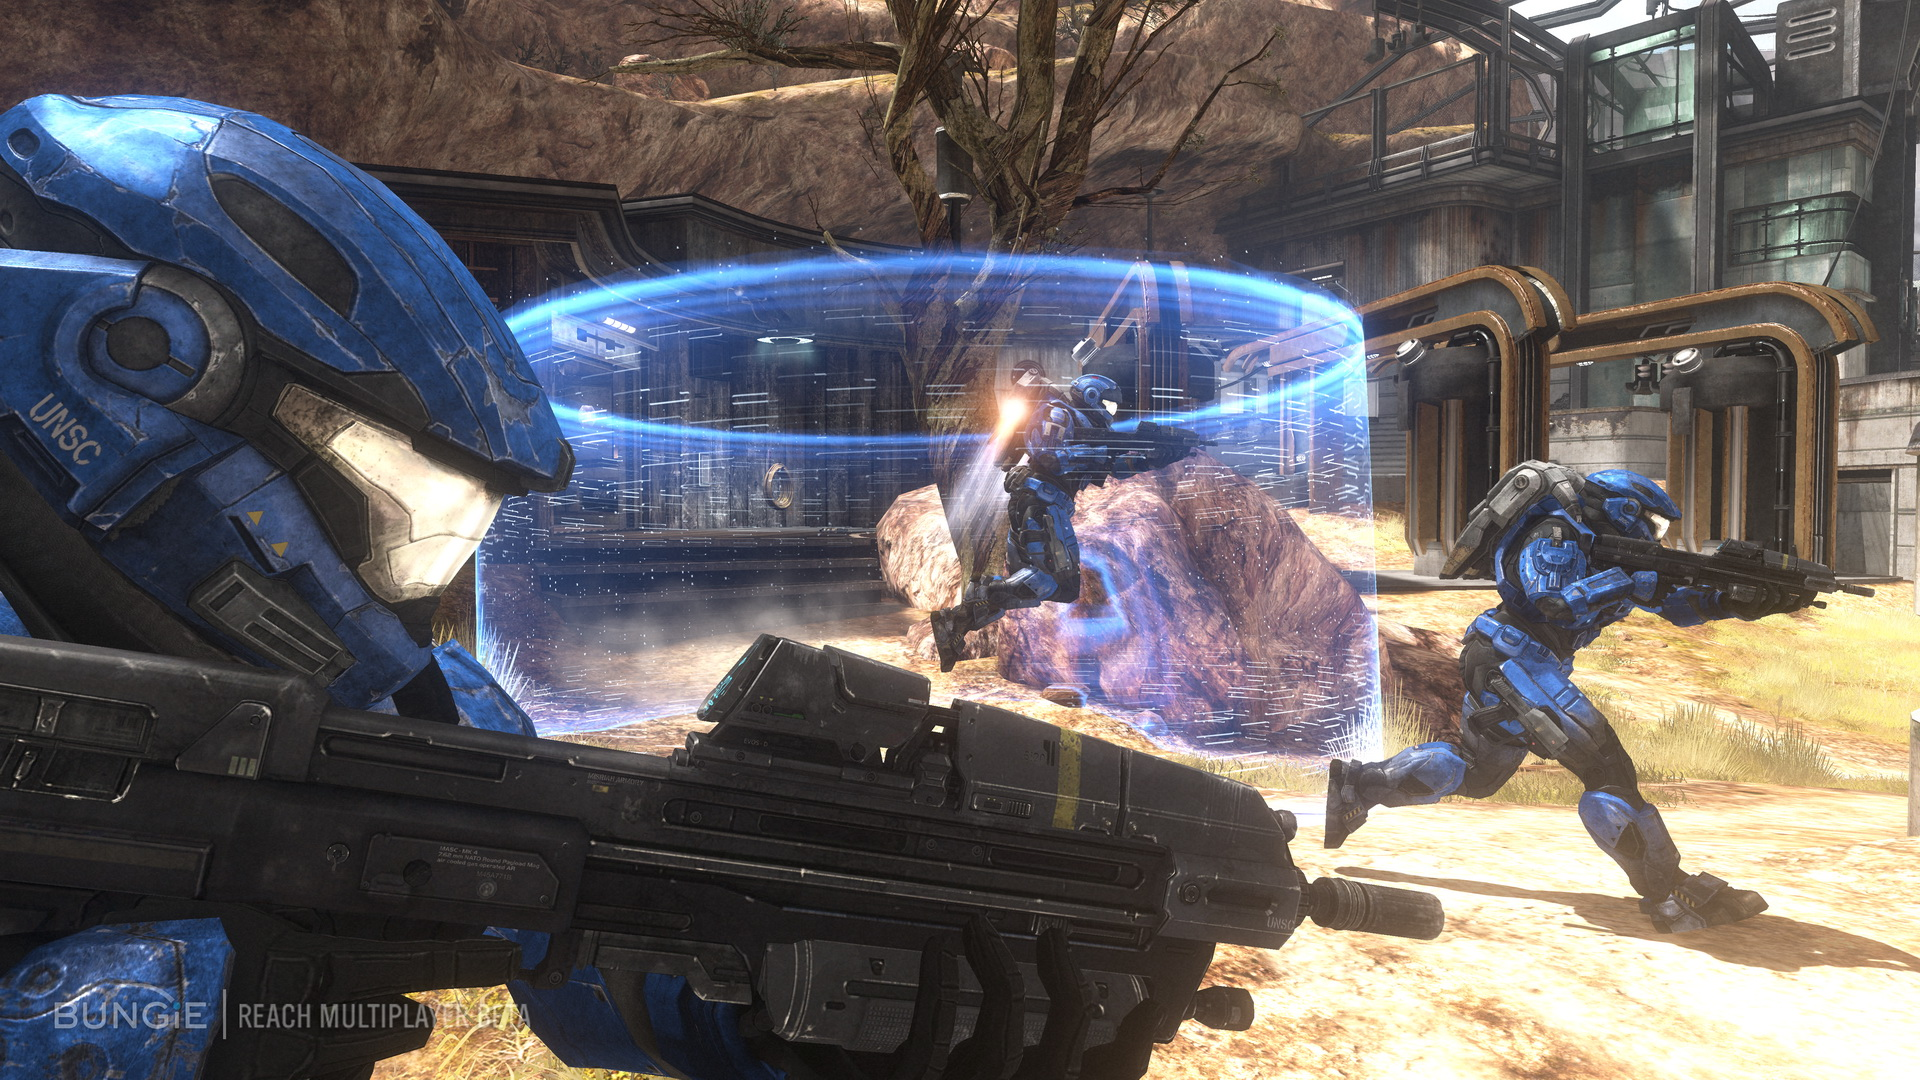 Beta gears Halo: Reach to hit shelves Sept. 14